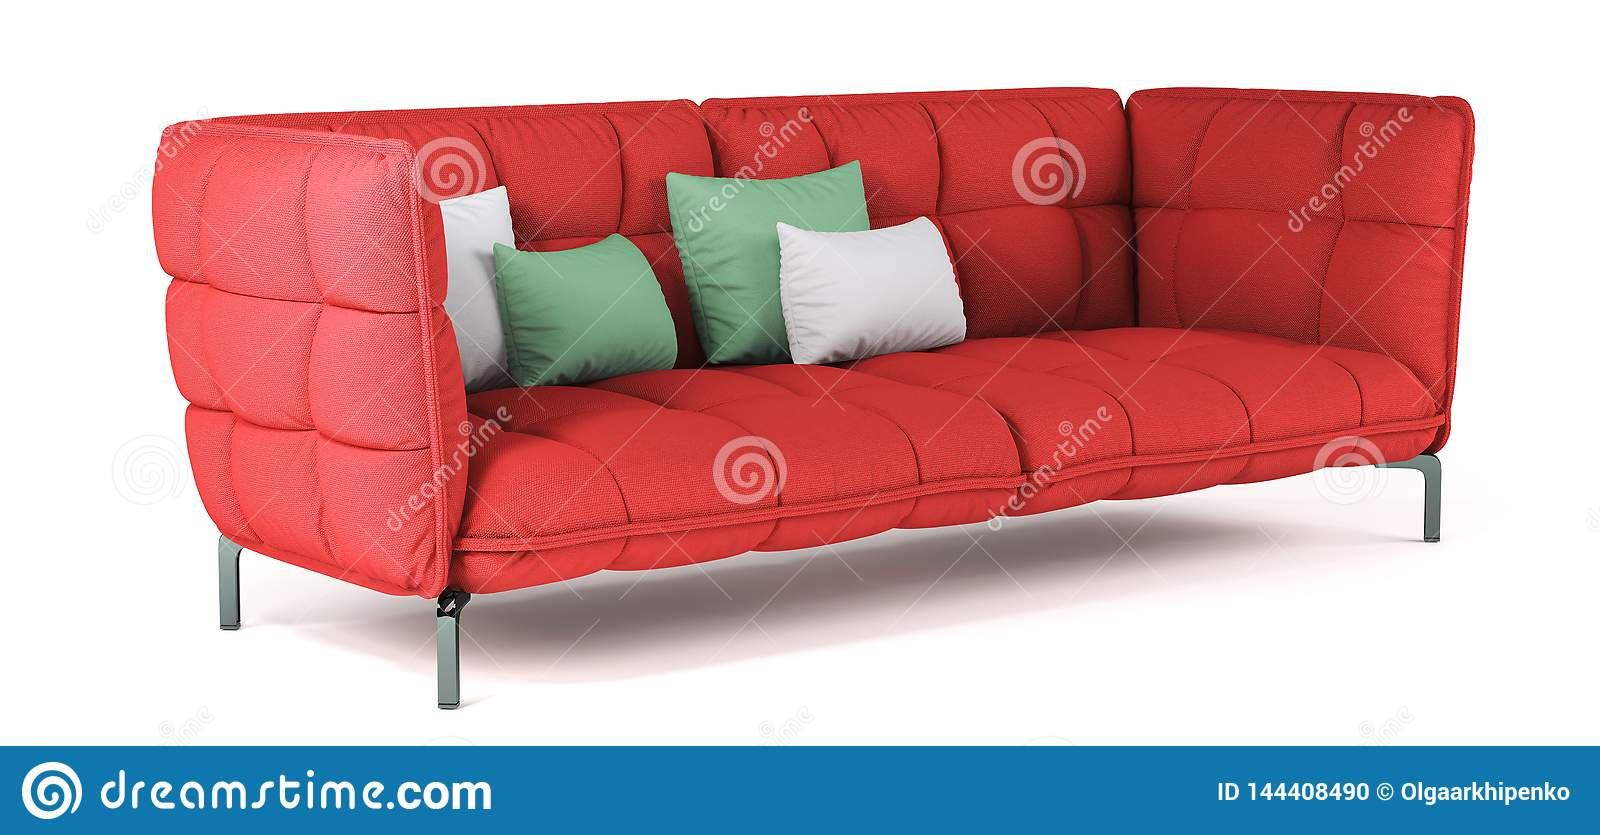 Modern Quilted Sofa Modern Red Quilted Fabric Sofa On Metal Legs With Pillows On